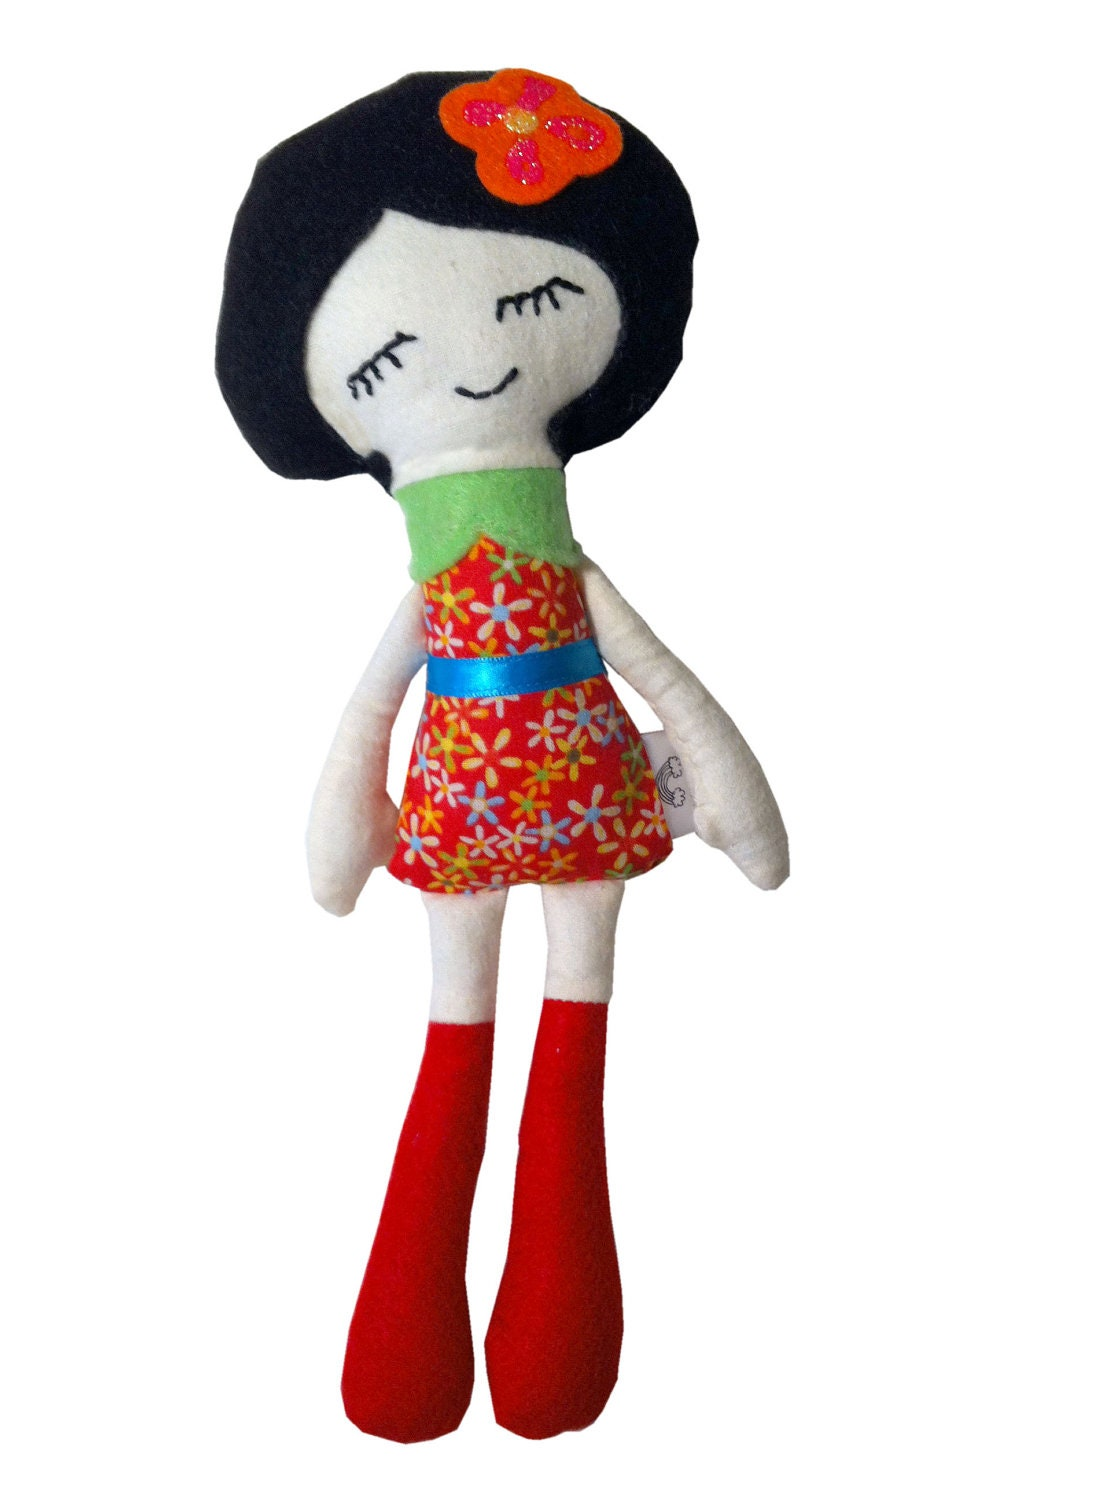 Lazy Daisy Cloth Doll - Black Hair - Kokma